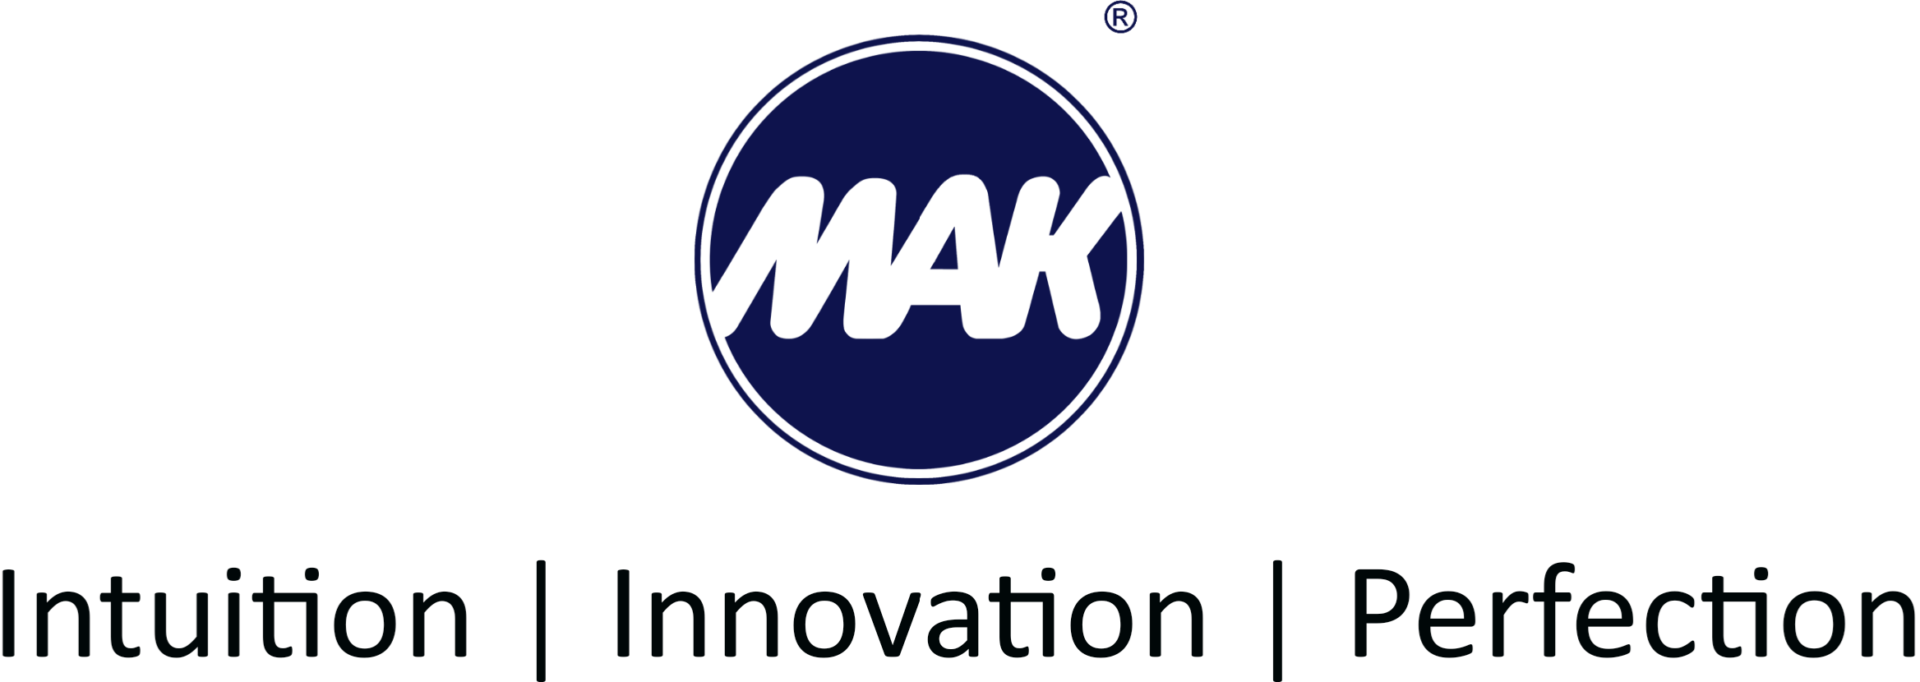 MAK – Intuition | Innovation | Perfection